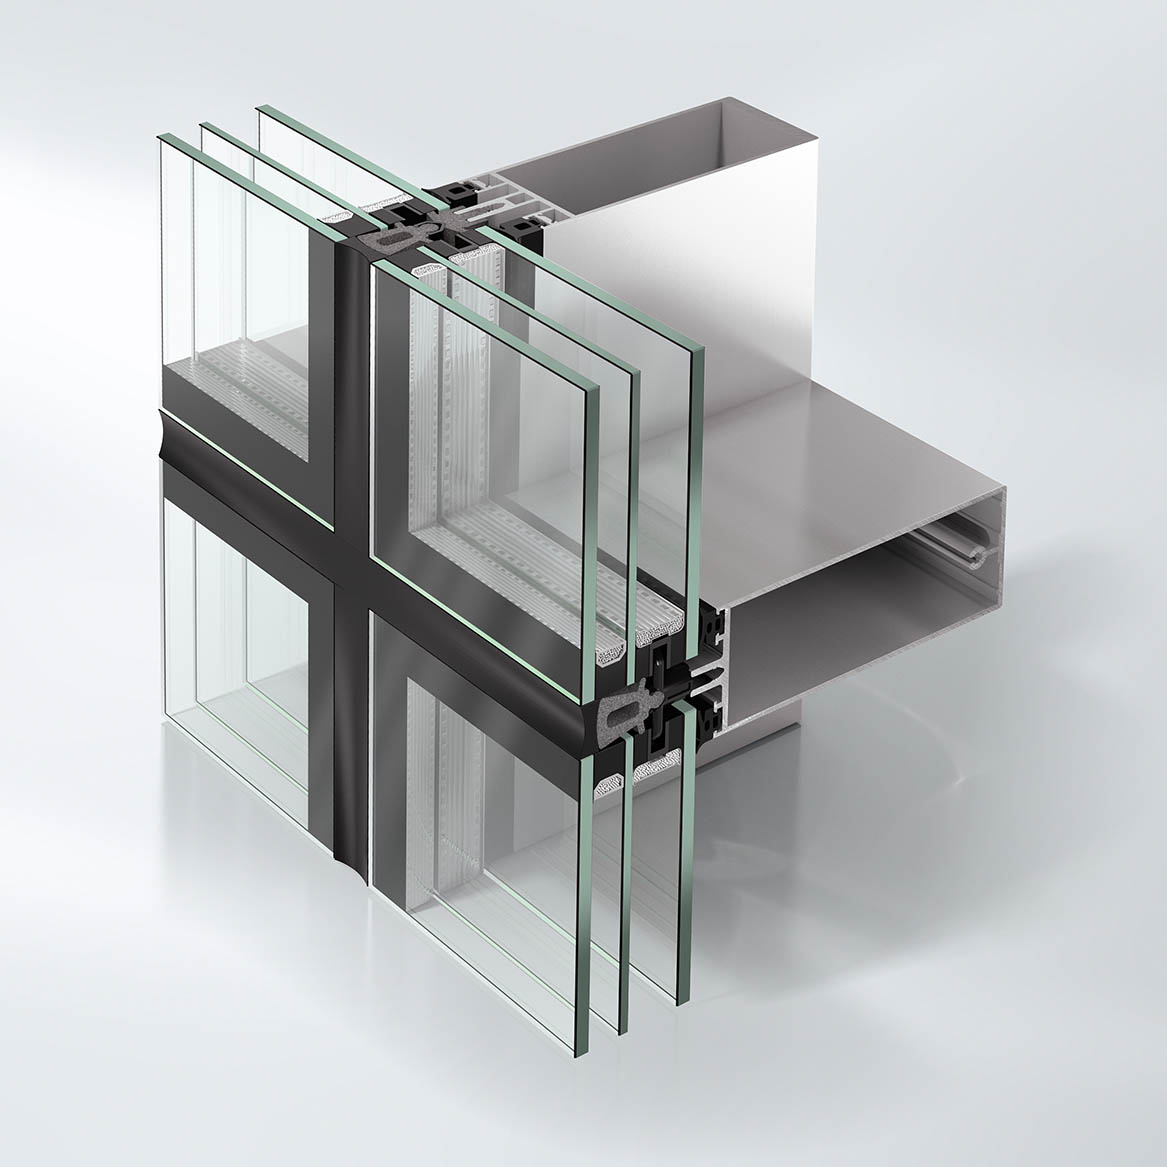 Stick curtain walling structure component